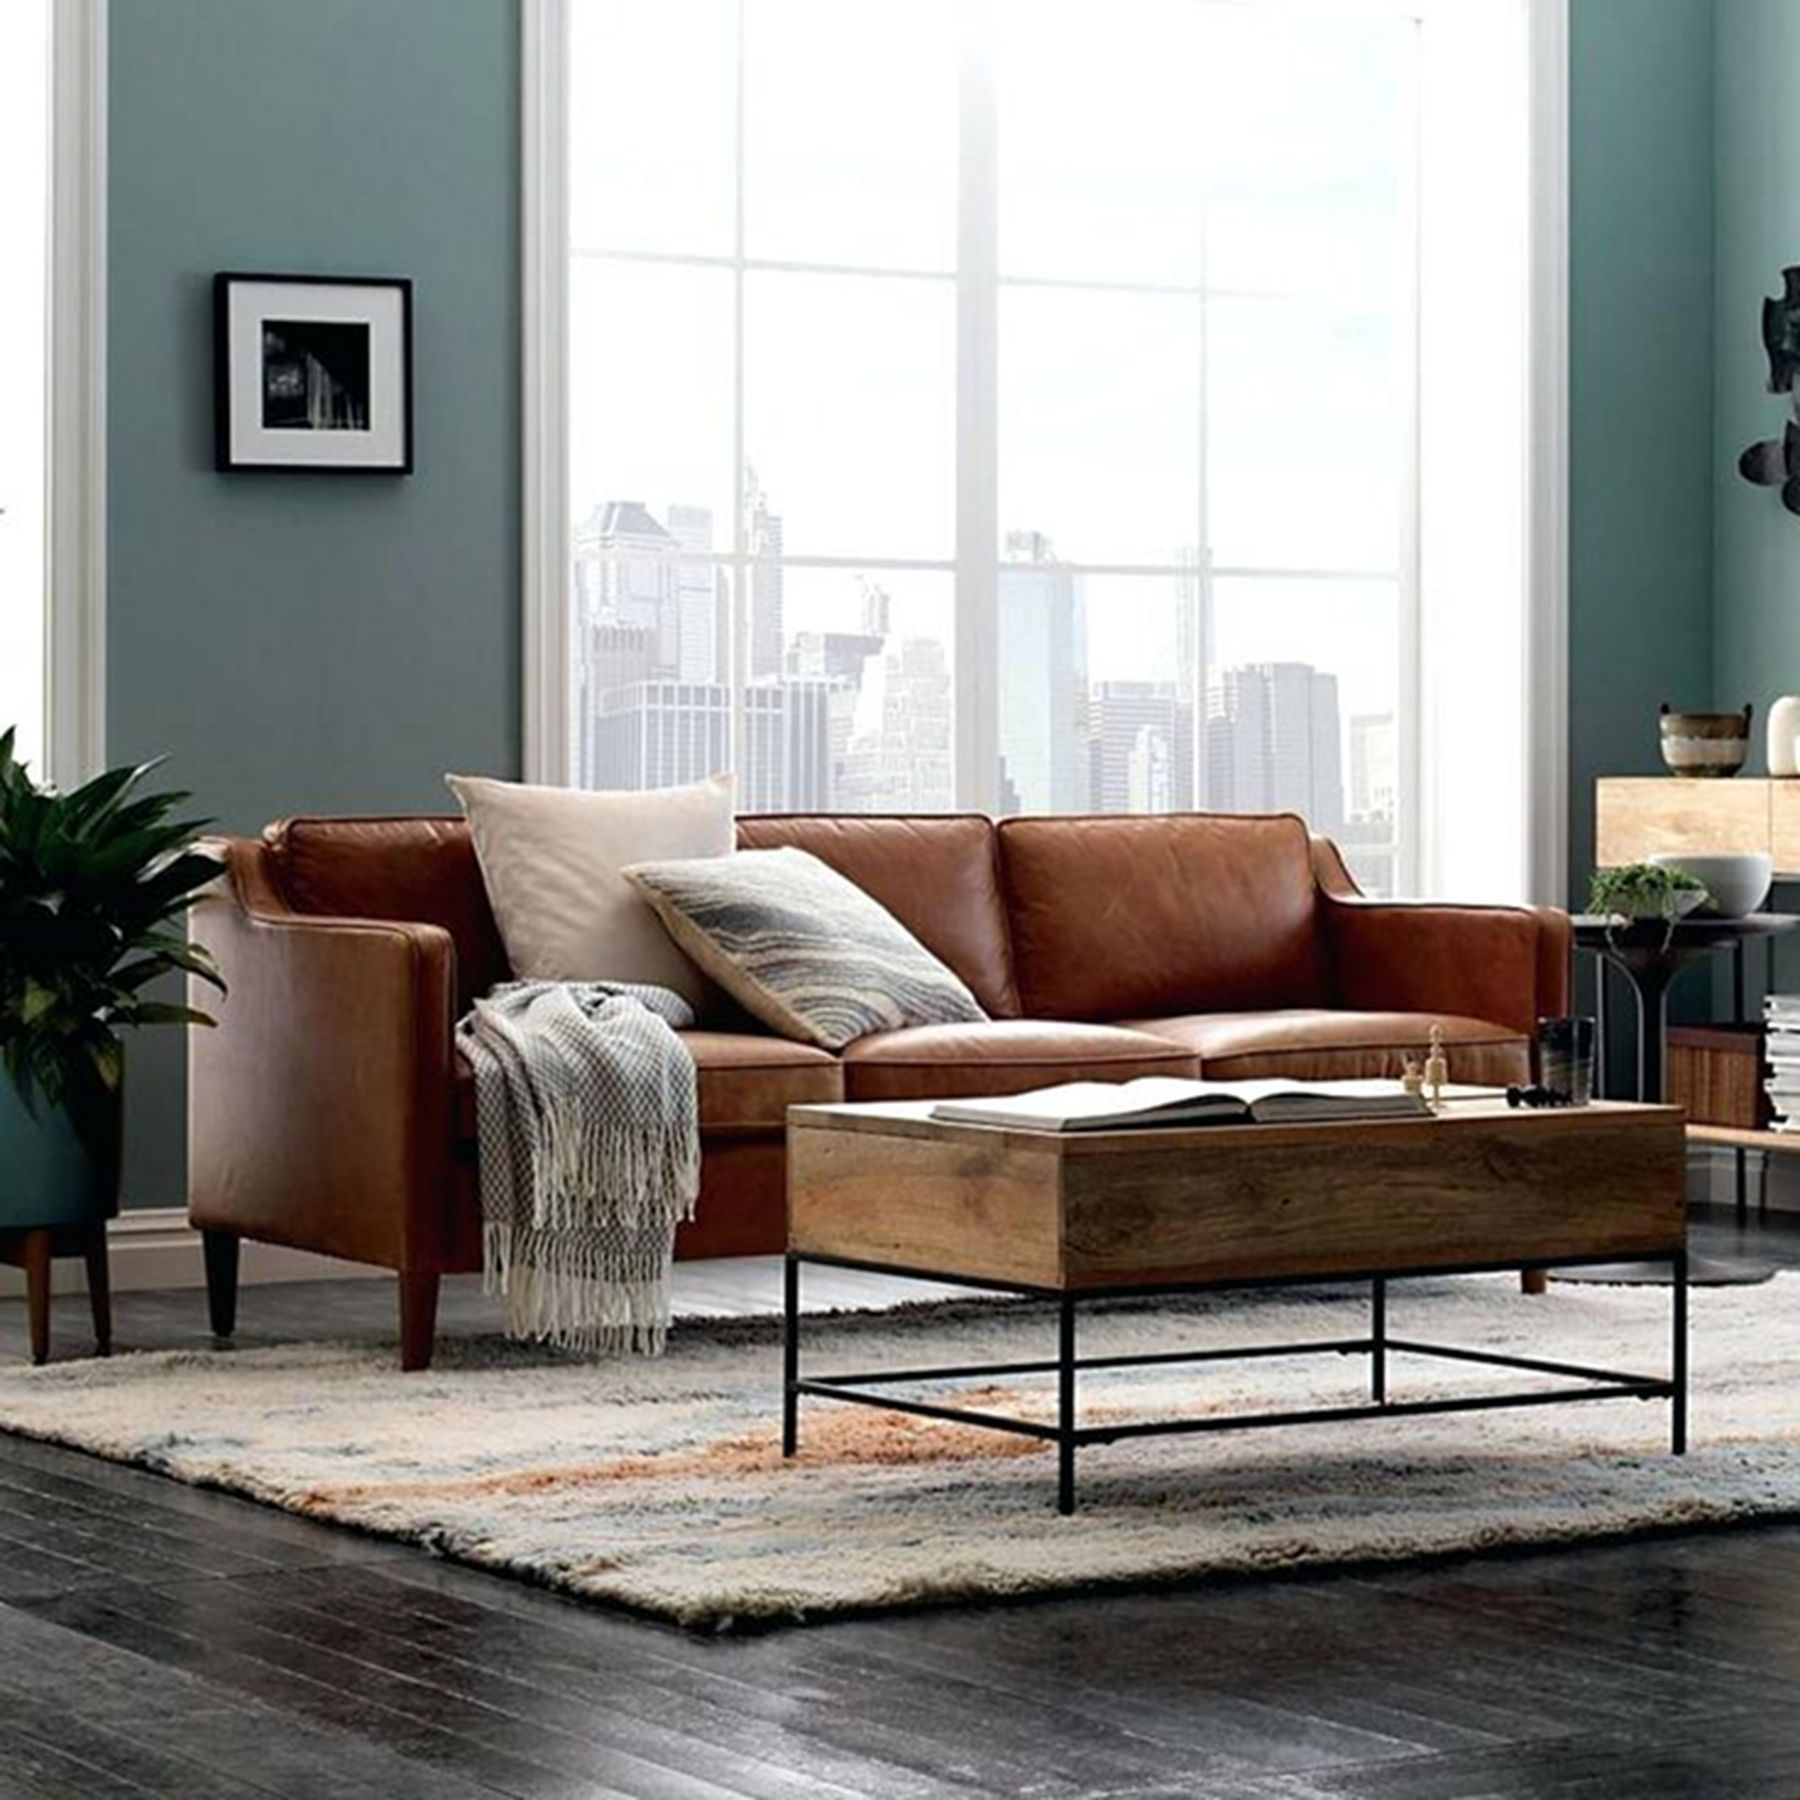 10 Beautiful Sofa Ideas For Your Minimalist Living Room Leather Sofa Living Room Brown Sofa Decor Leather Couches Living Room